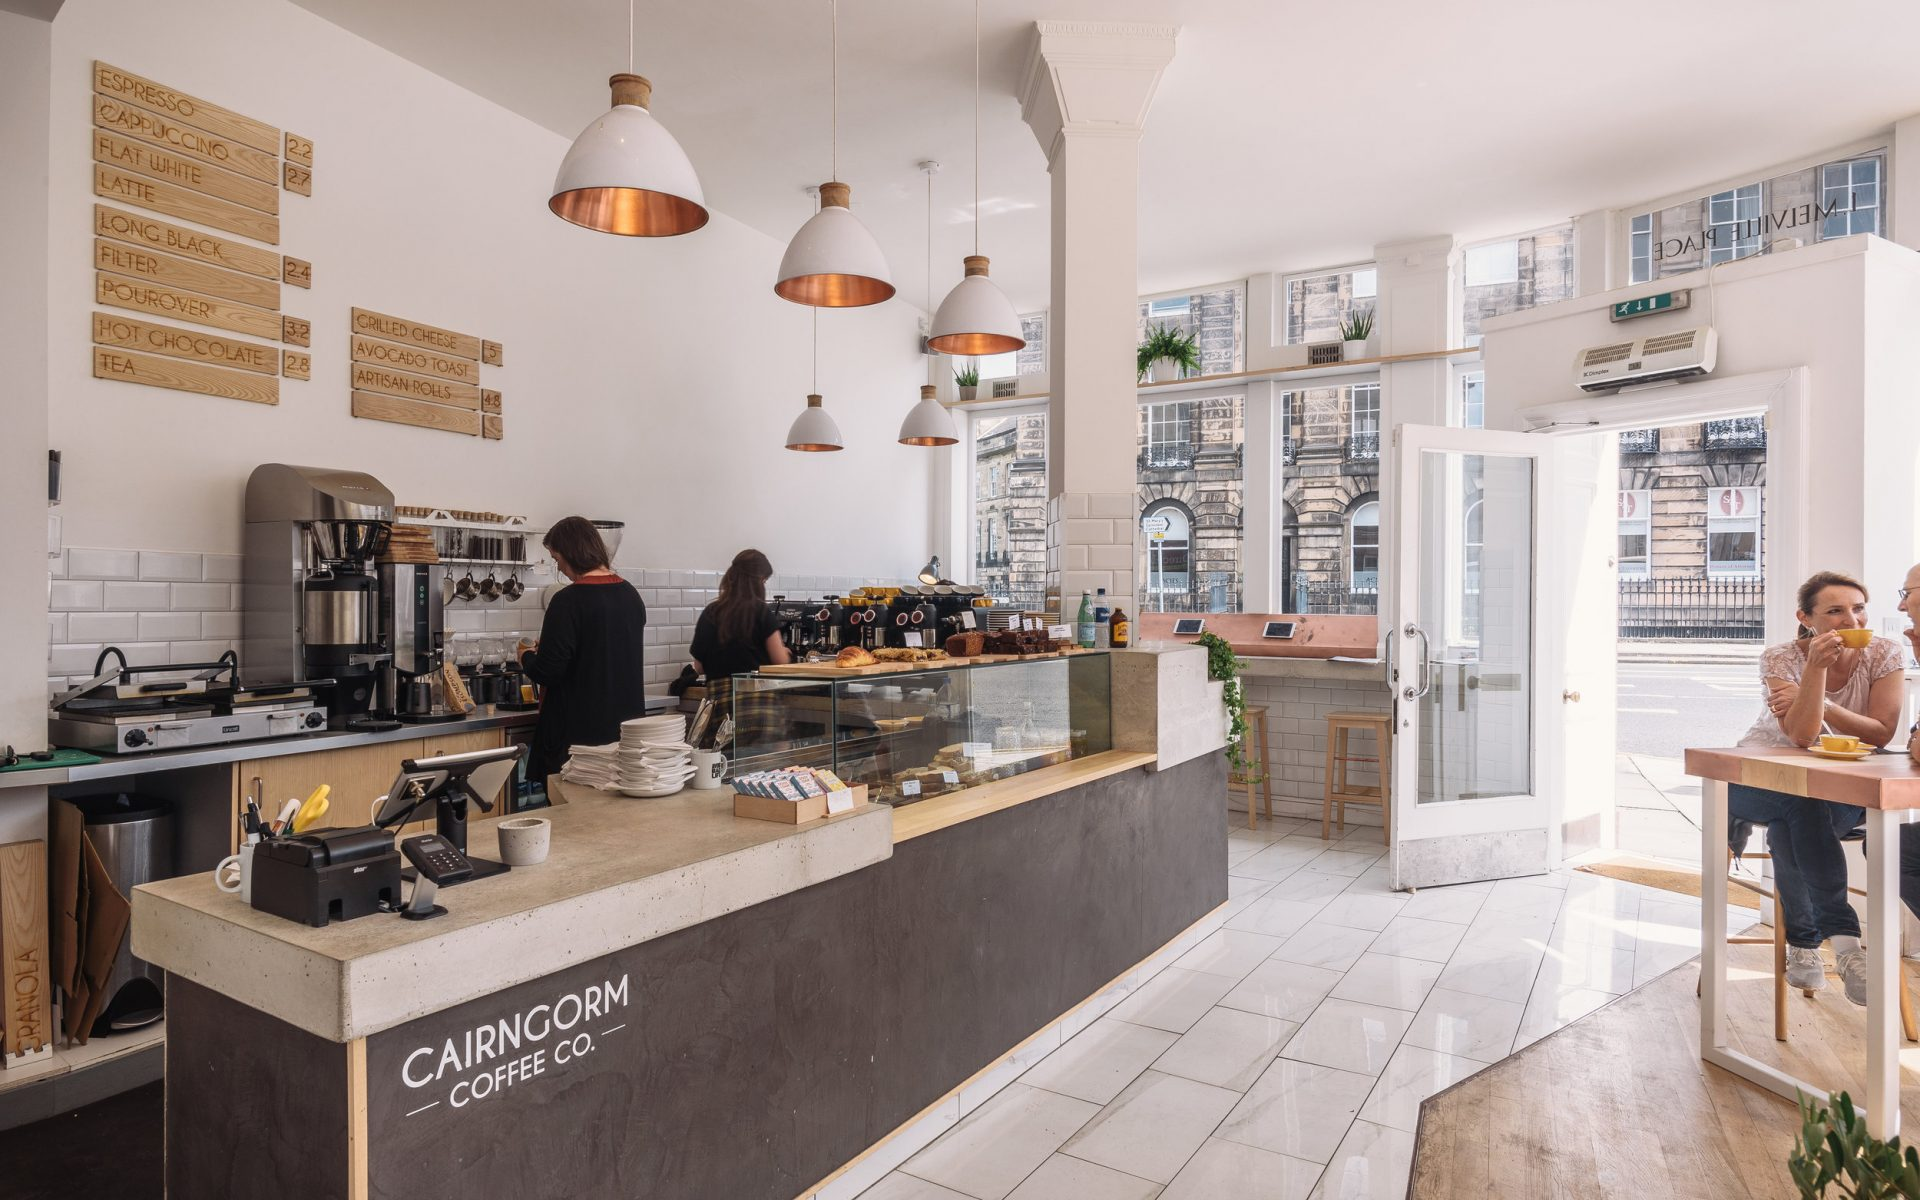 Cairngorm Coffee Edinburgh